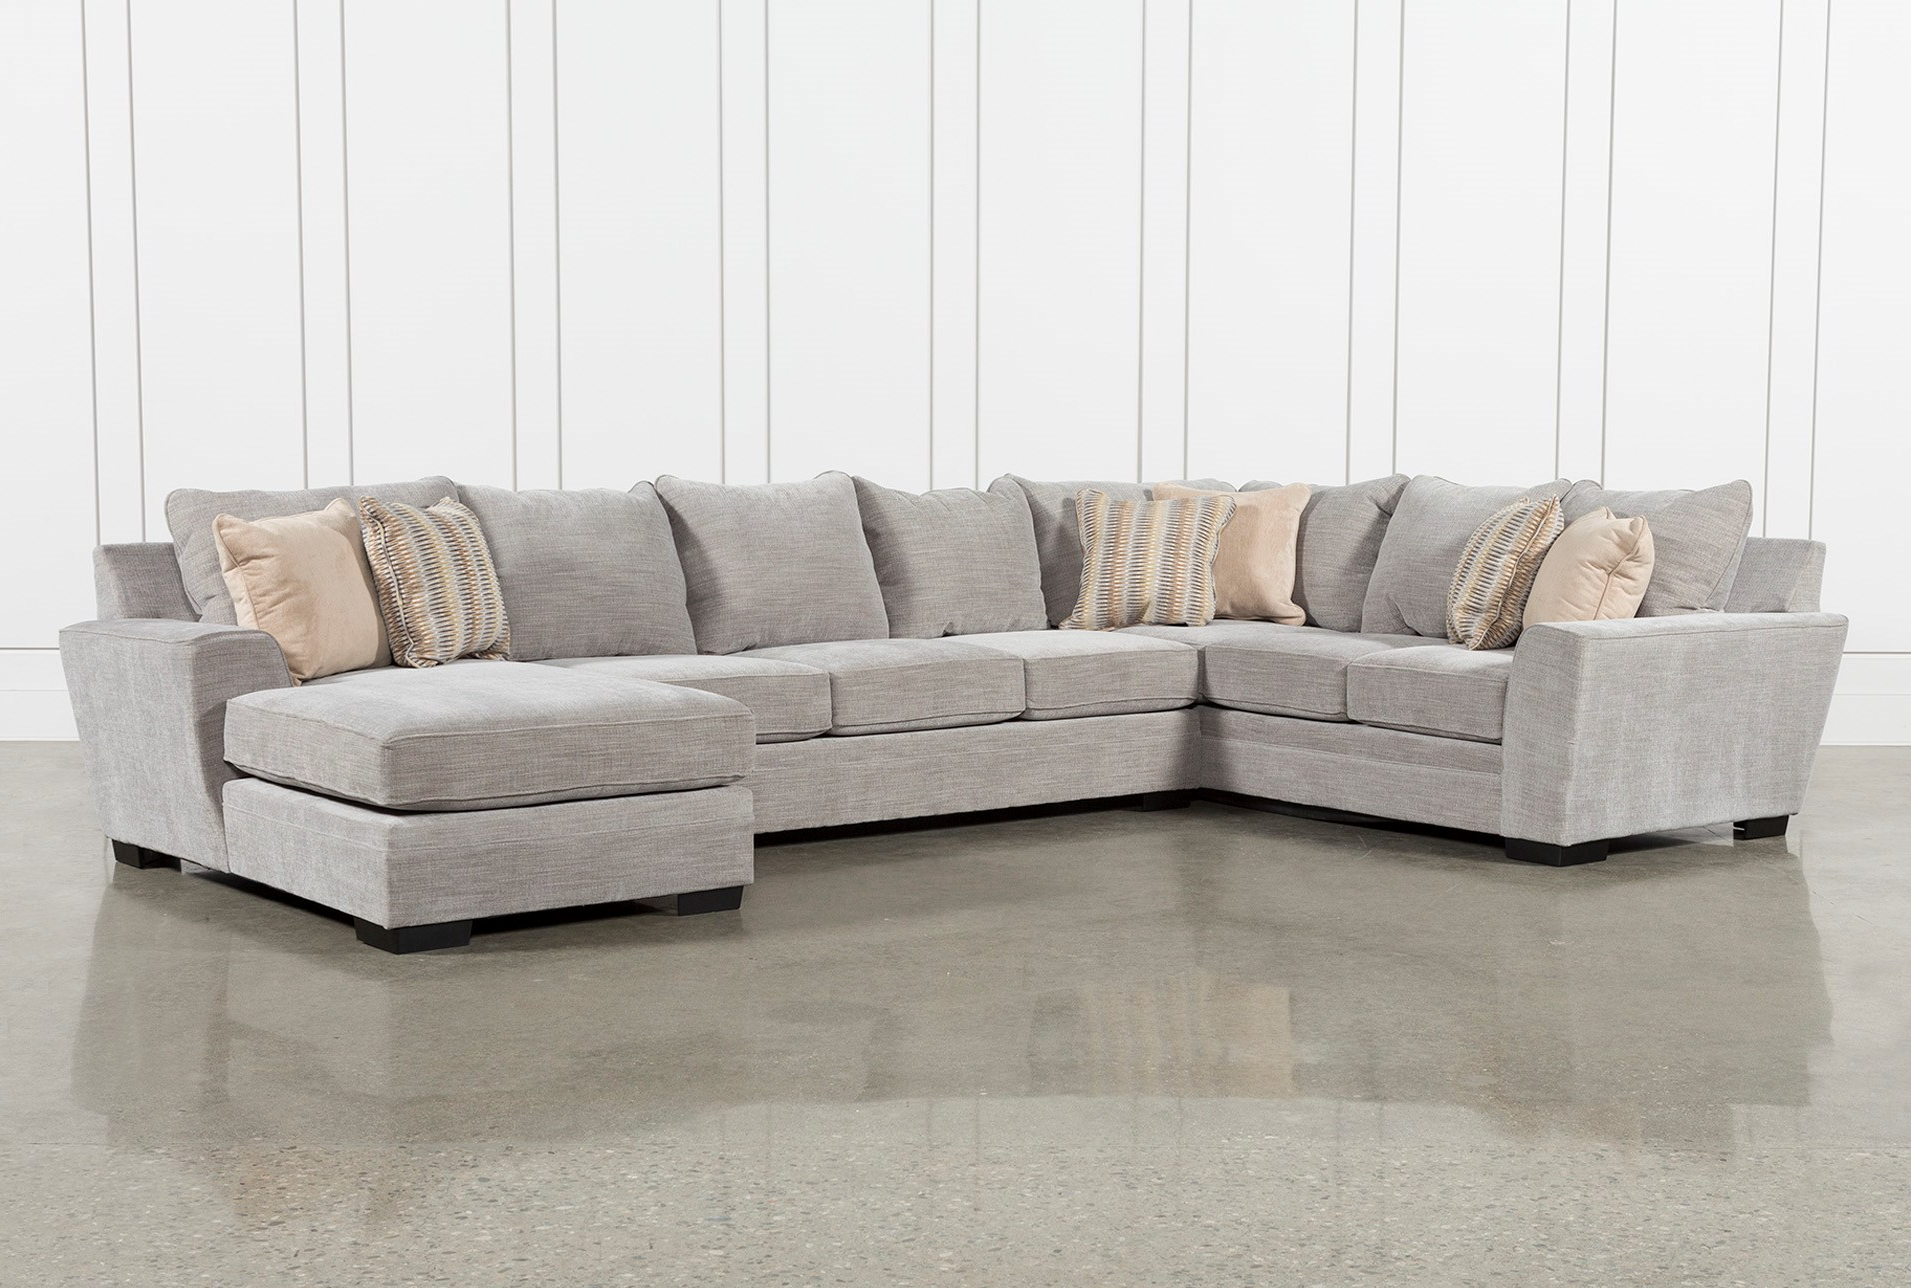 Most Up To Date Malbry Point 3 Piece Sectionals With Laf Chaise For Delano Smoke 3 Piece Sectional Living Spaces – Locsbyhelenelorasa (View 8 of 20)